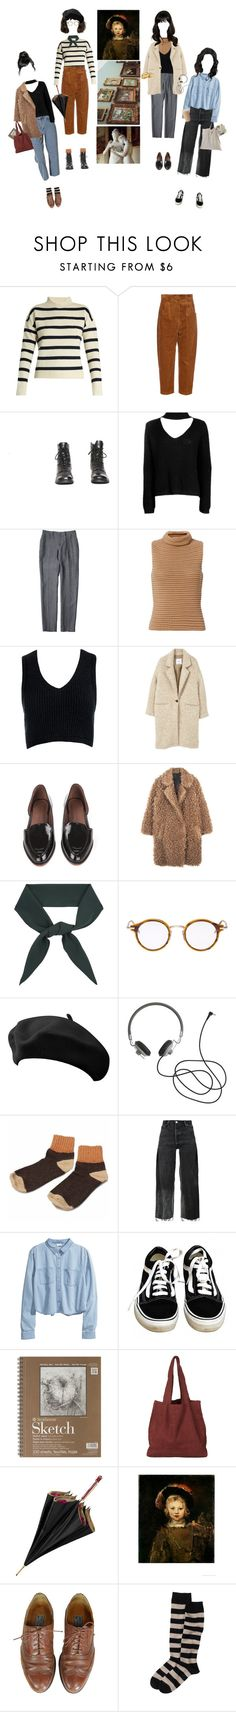 """Let's Meet At The Museum"" by silentmoonchild ❤ liked on Polyvore featuring Tabula Rasa, Hillier Bartley, Boohoo, Exclusive for Intermix, Sans Souci, MANGO, Rachel Comey, Chloé, Thom Browne and RE/DONE"